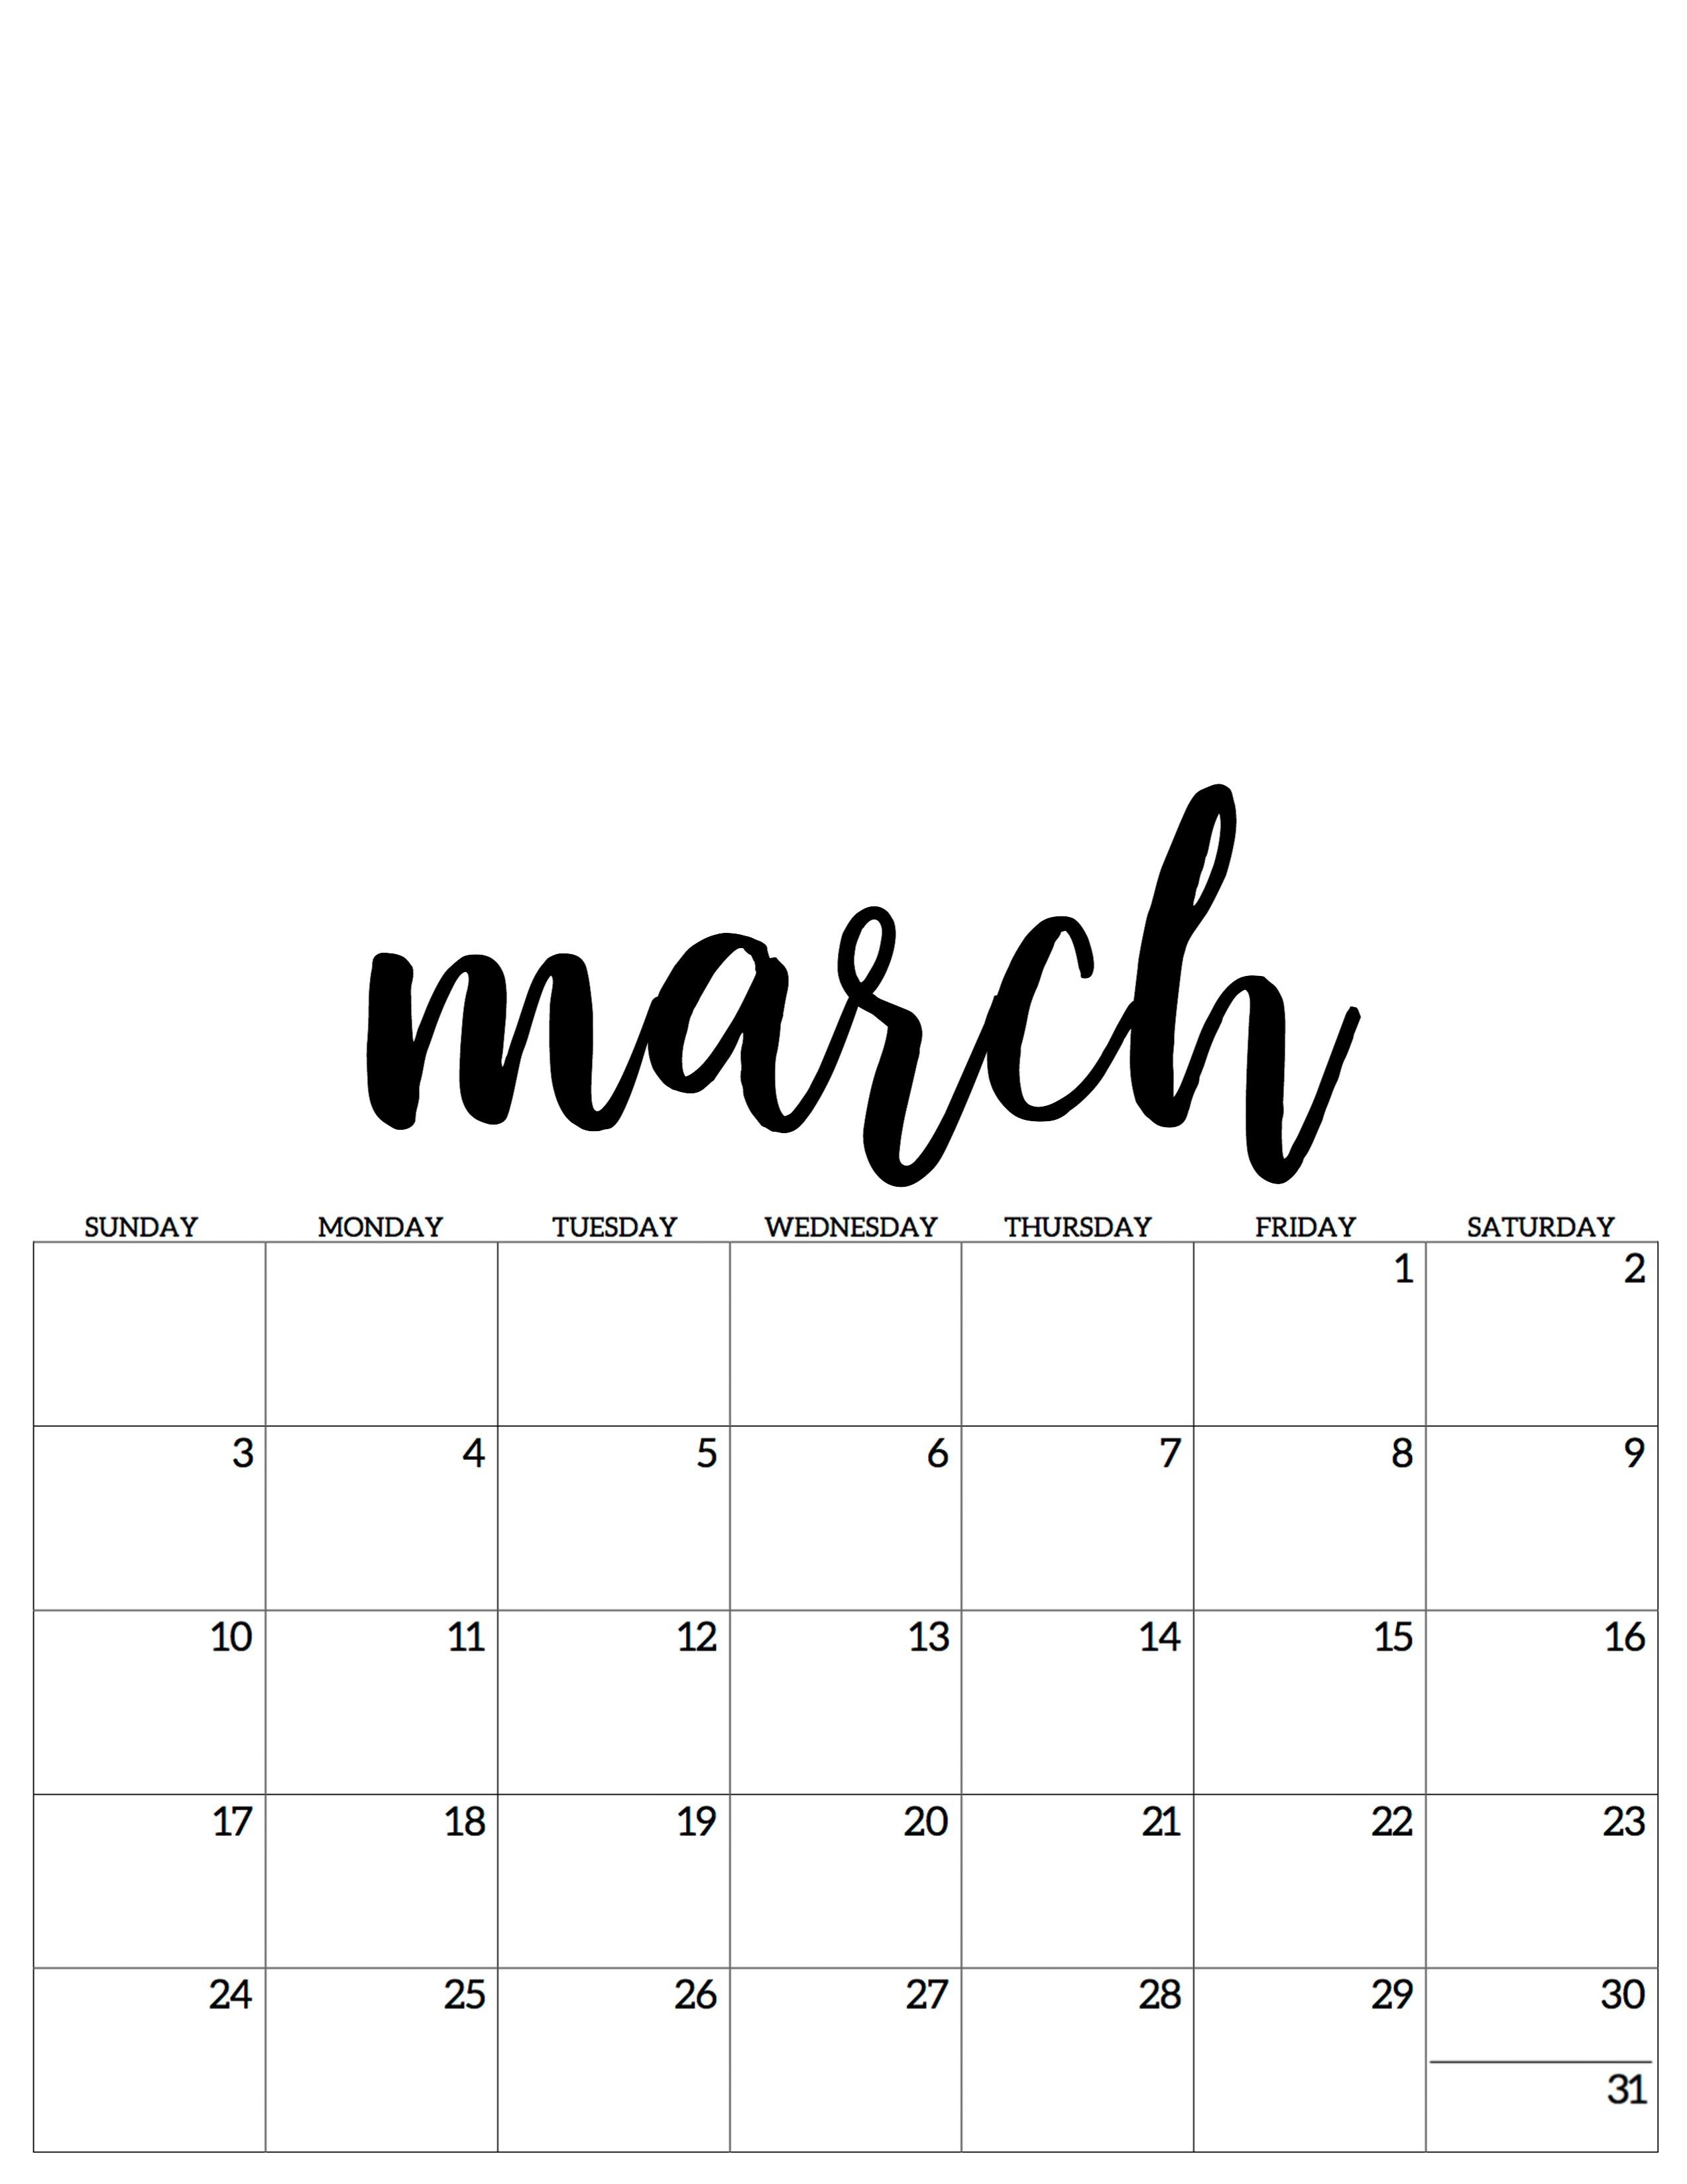 March Calendar 2019 Más Recientemente Liberado March März Kalender Calendar 2019 Calendar 2019 Of March Calendar 2019 Más Populares February March Calendar 2019 2018 Printable Calendar Store